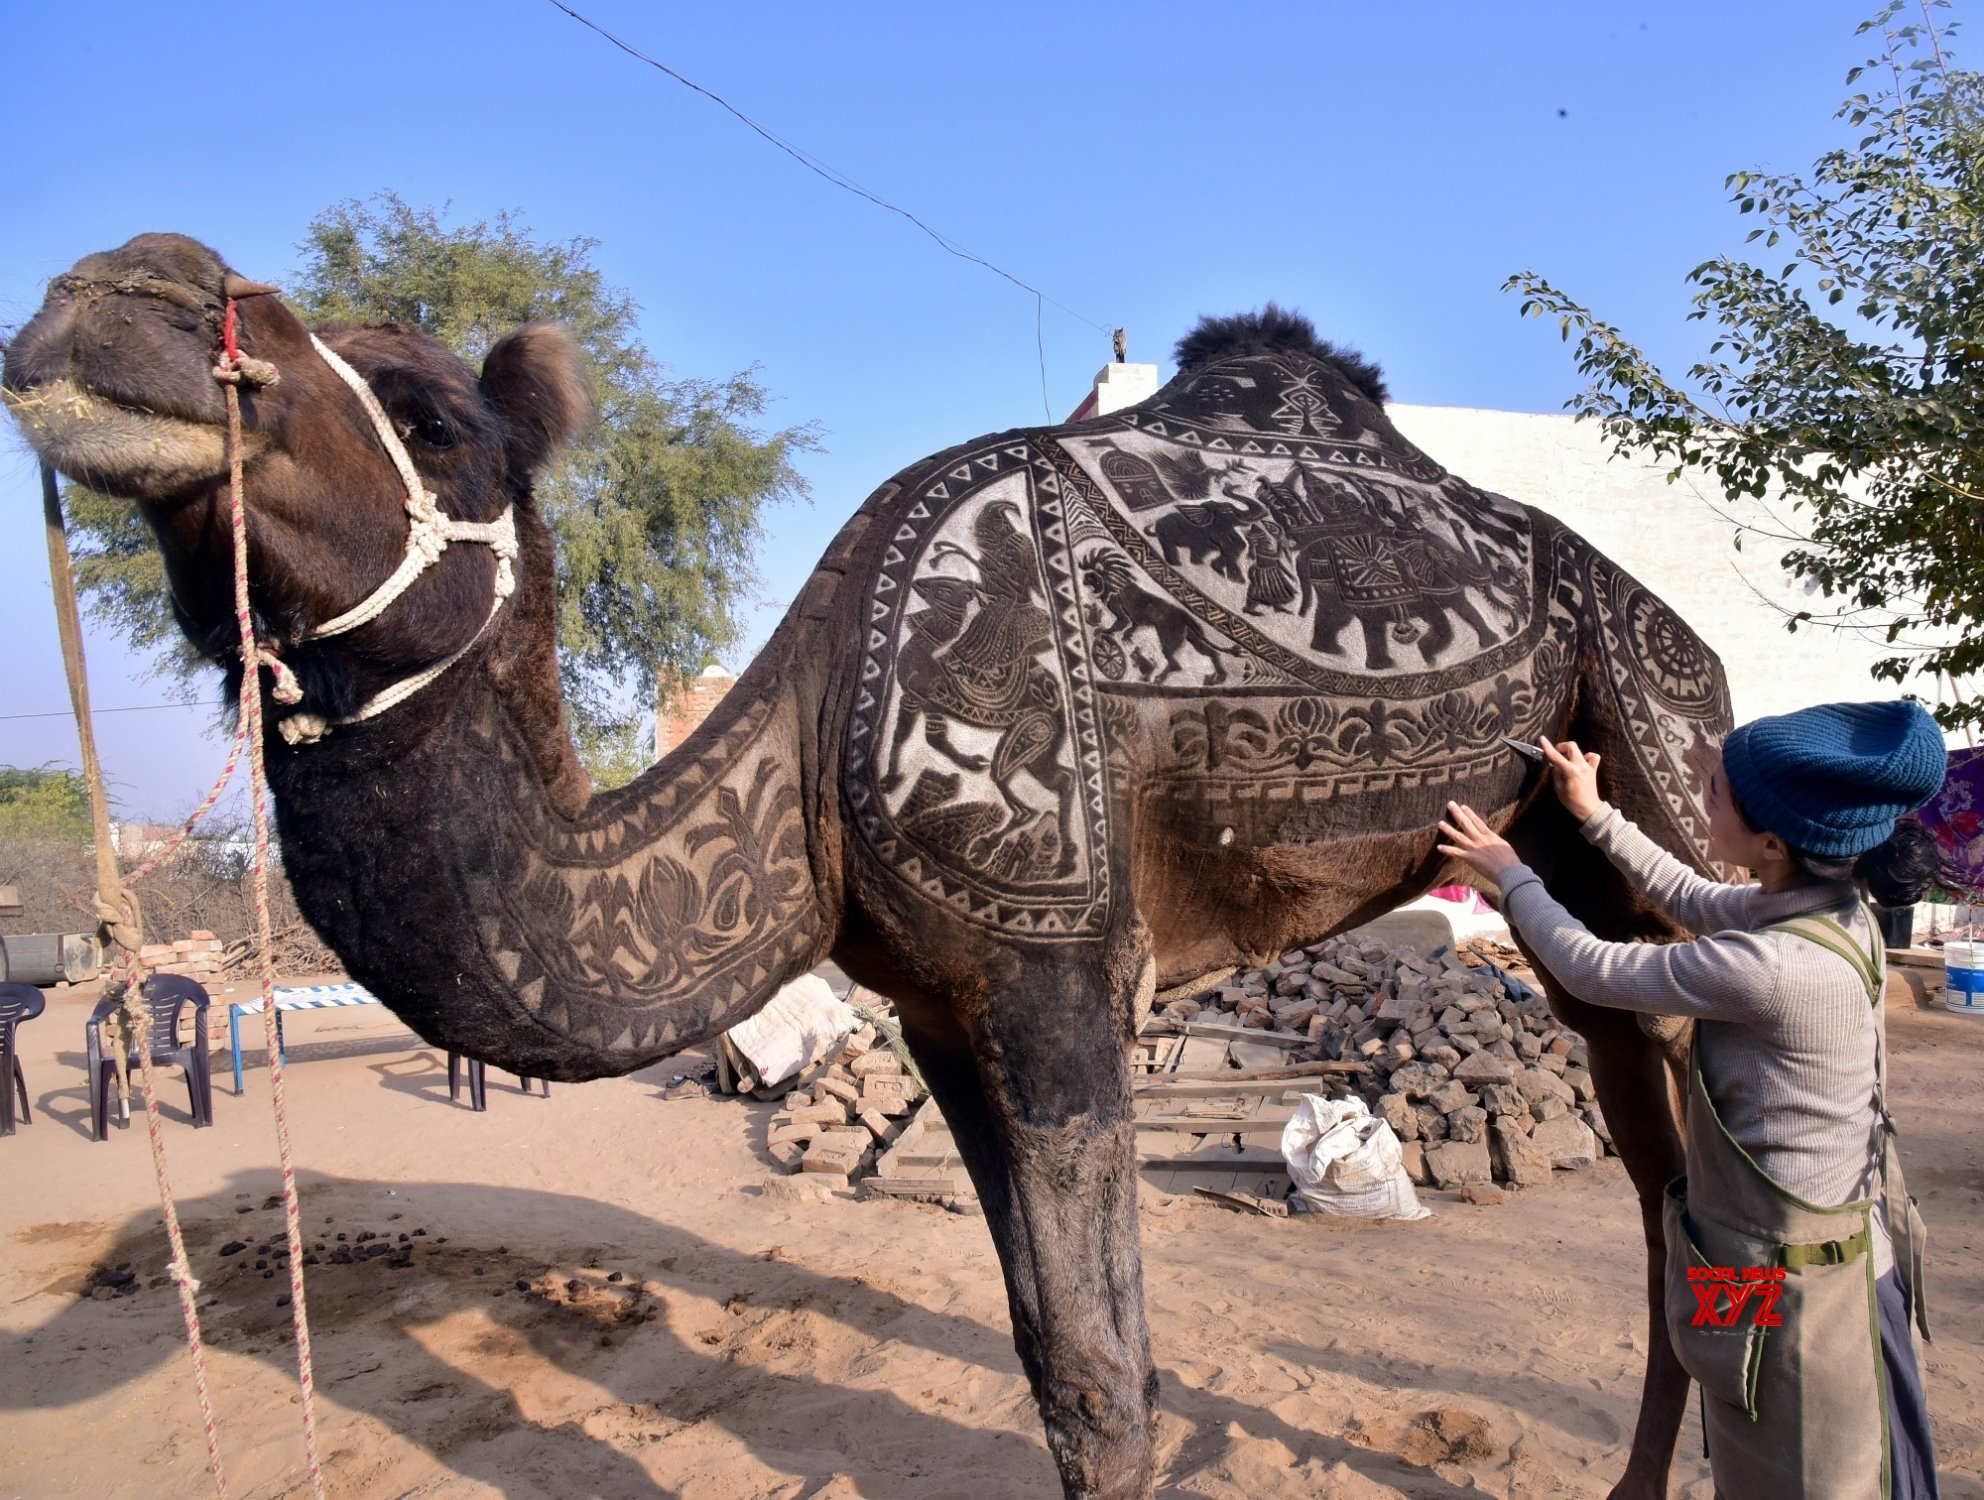 Bikaner: Camel Festival - Japanese artist' designs on camel's body #Gallery